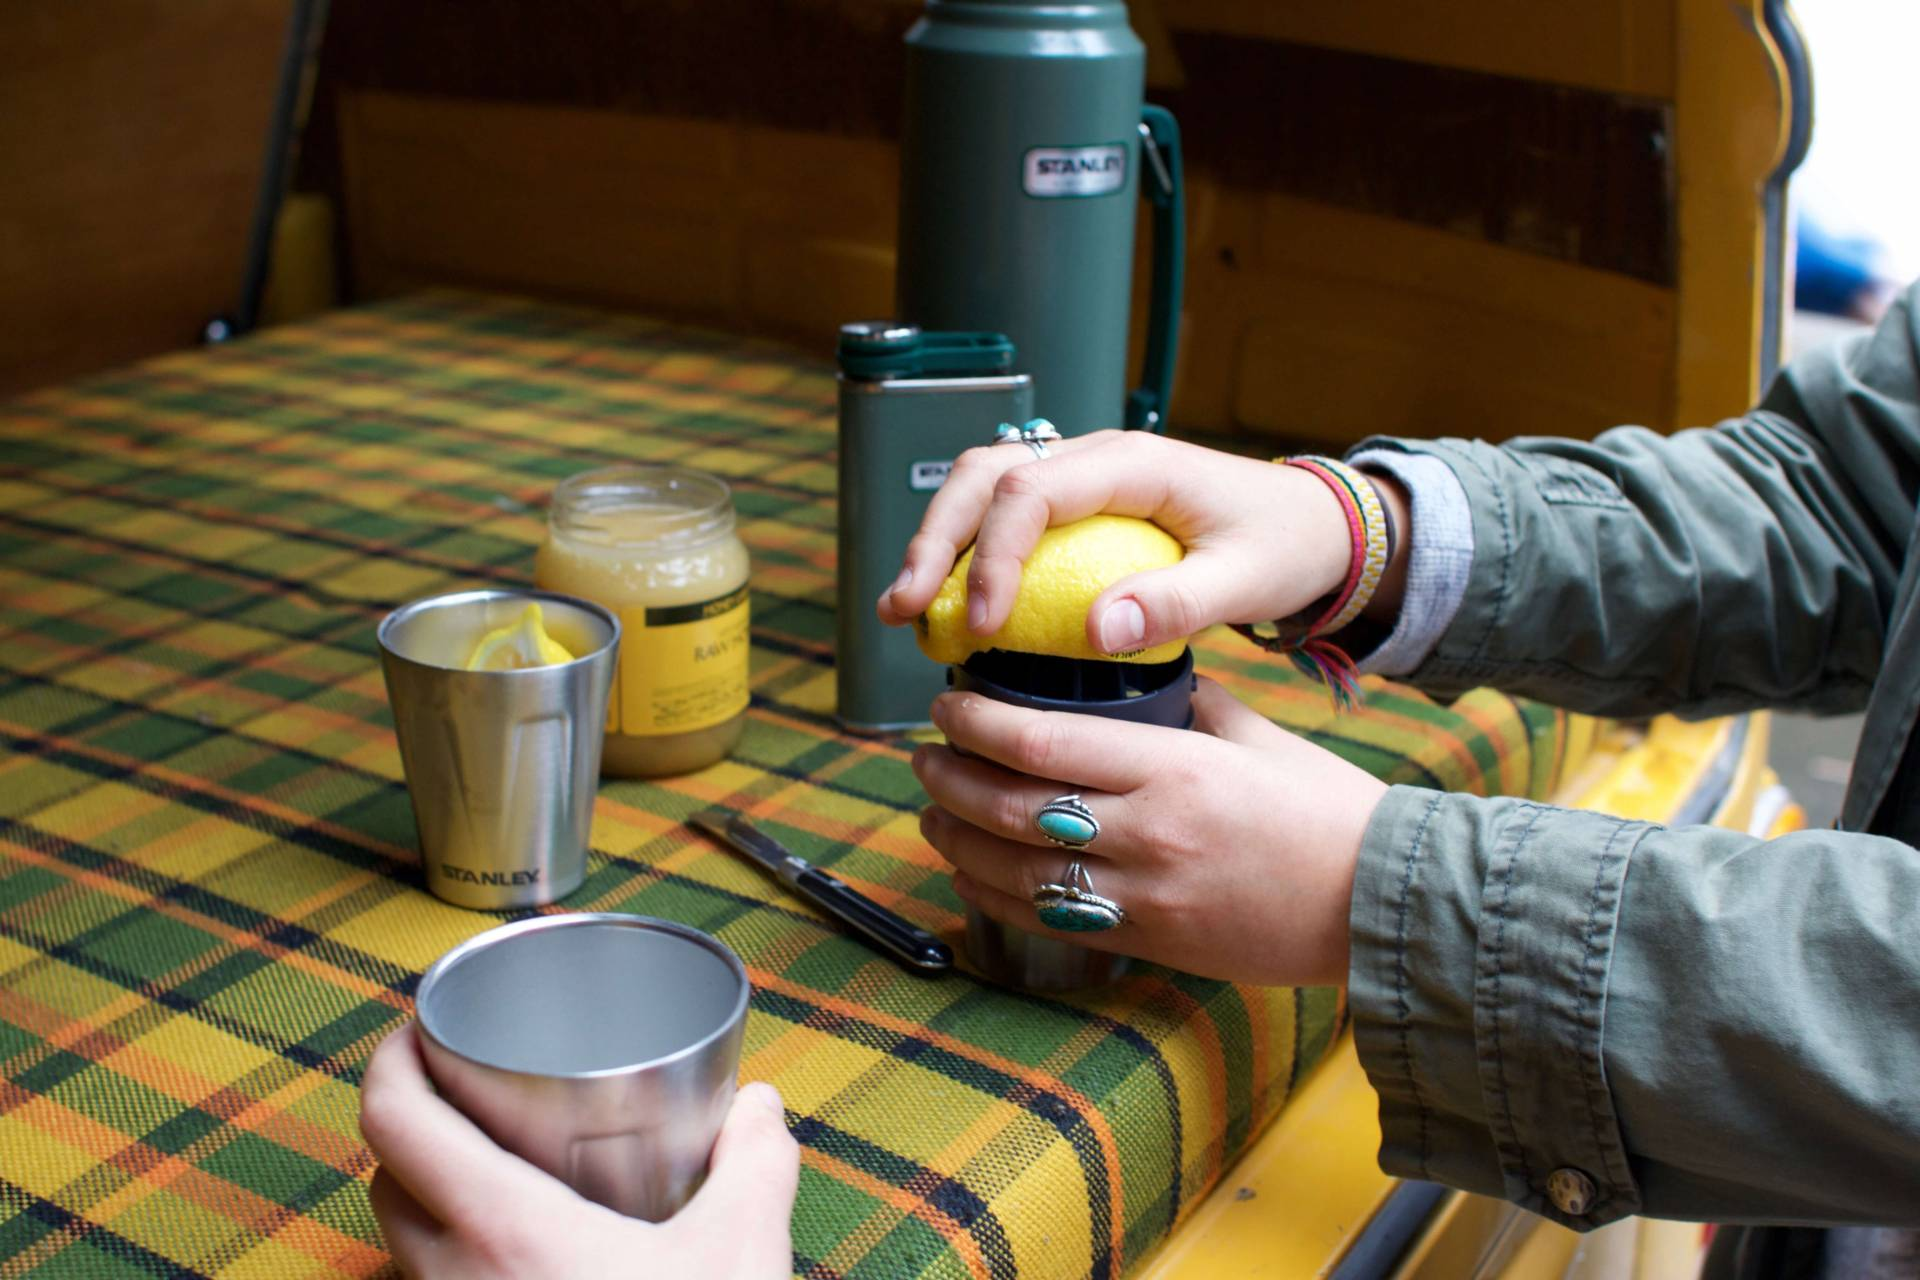 Using Stanley Brand Happy Hour Kit to make hot toddys